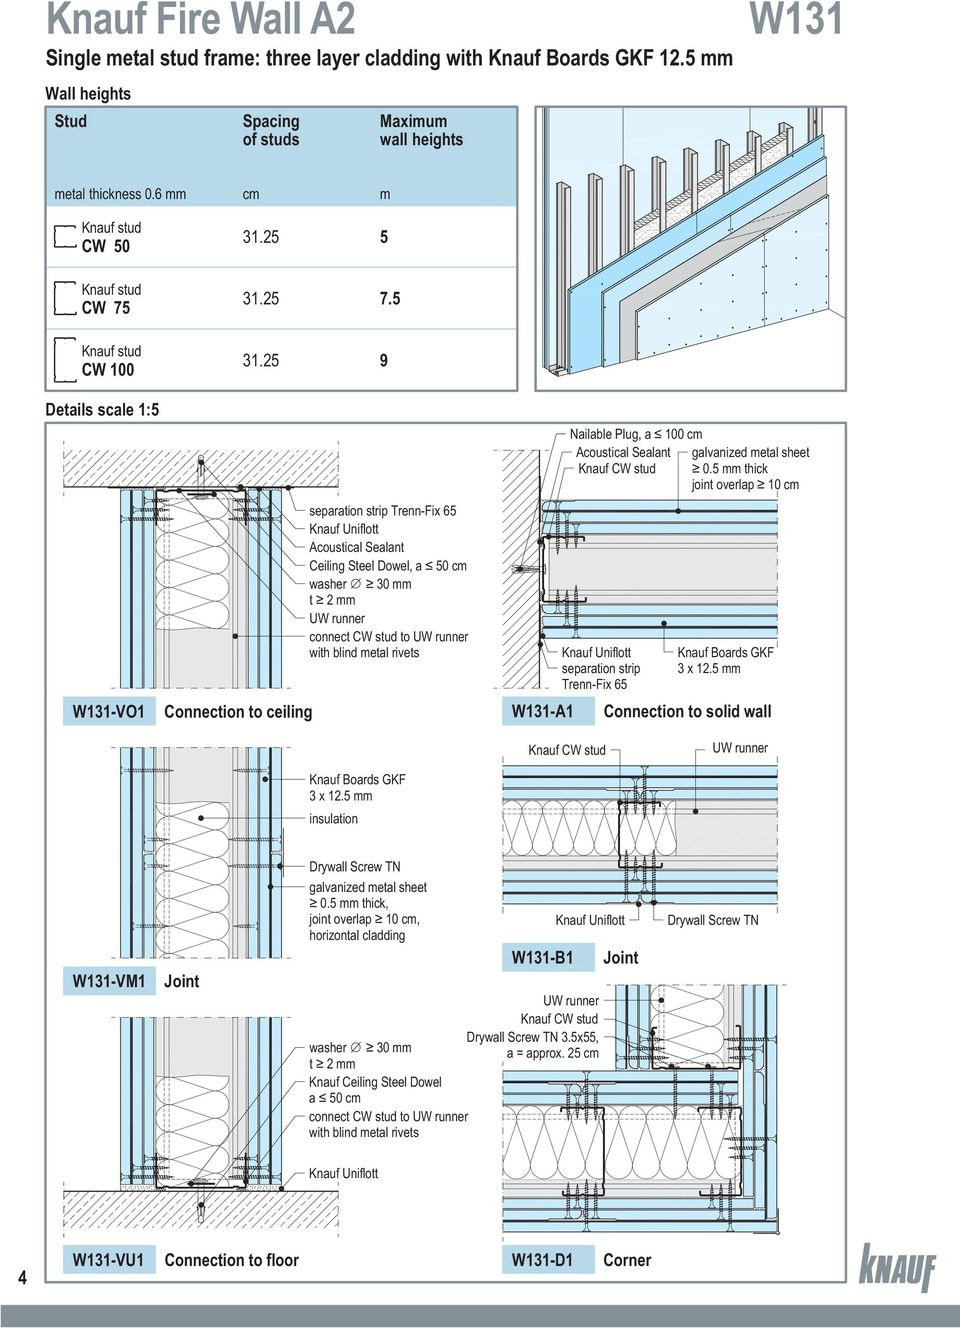 25 9 Details scale 1:5 -VO1 Connection to ceiling separation strip Trenn-Fix 65 Ceiling Steel Dowel, a 50 cm washer 30 mm t 2 mm connect CW stud to with blind metal rivets -A1 Nailable Plug, a 100 cm